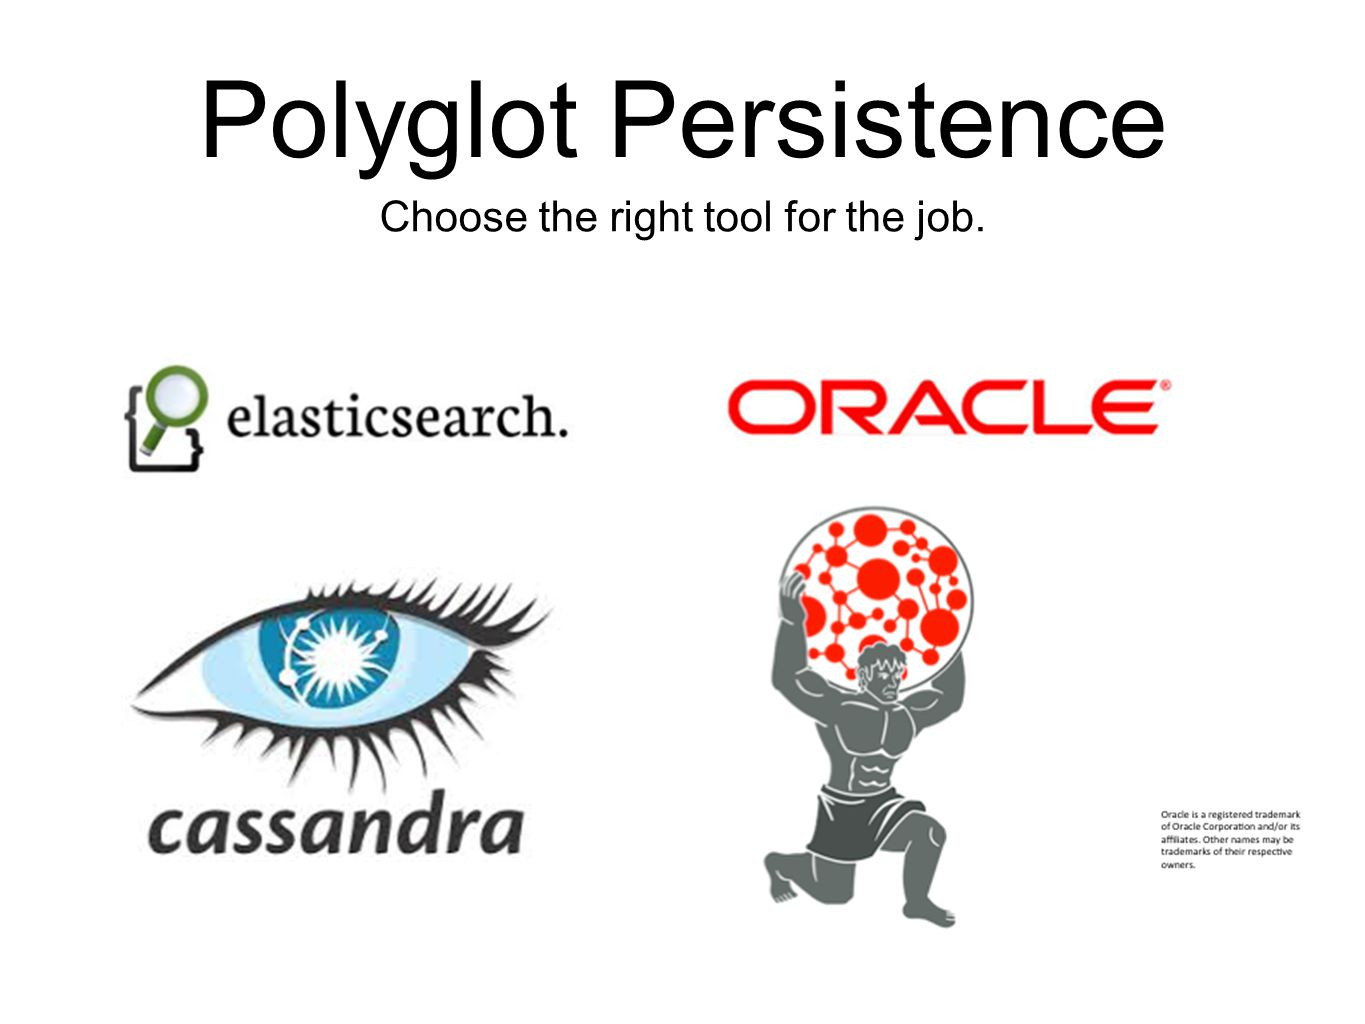 Polyglot Persistence Choose the right tool for the job.